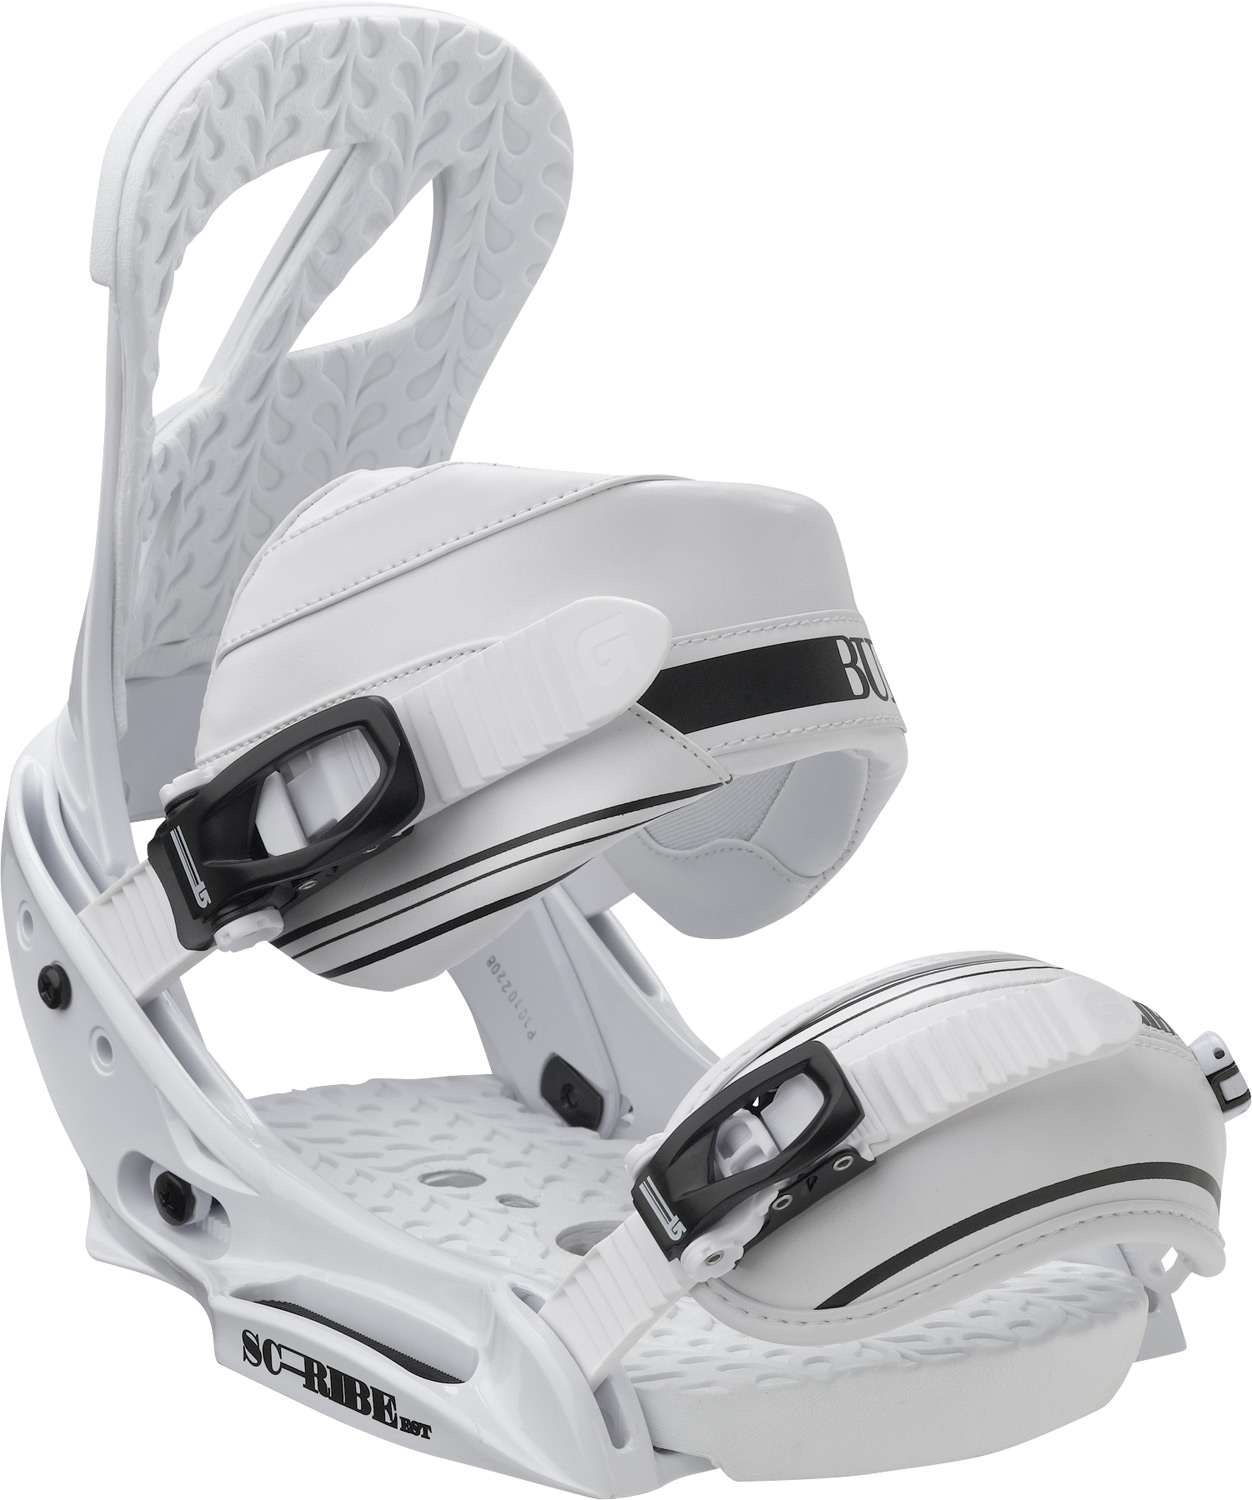 Snowboard Freestyle focus, feline feel.Key Features of the Burton Scribe EST Snowboard Bindings: Women's-Specific True Fit Design BASEPLATE: NEW 30% Short-Glass/Nylon Composite EST HI-BACK: Single-Component Canted Living Hinge Hi-Back STRAPS: Park- Asym Superstrap and Primo Capstrap BUCKLES: Smooth Glide Buckles CUSHIONING: NEW Removable Sensory BED Cushioning System Rides Exclusively with Burton Boards Featuring The Channel Features Re-Ground Materials in Baseplate and Hi-Back to Reduce Waste - $135.95